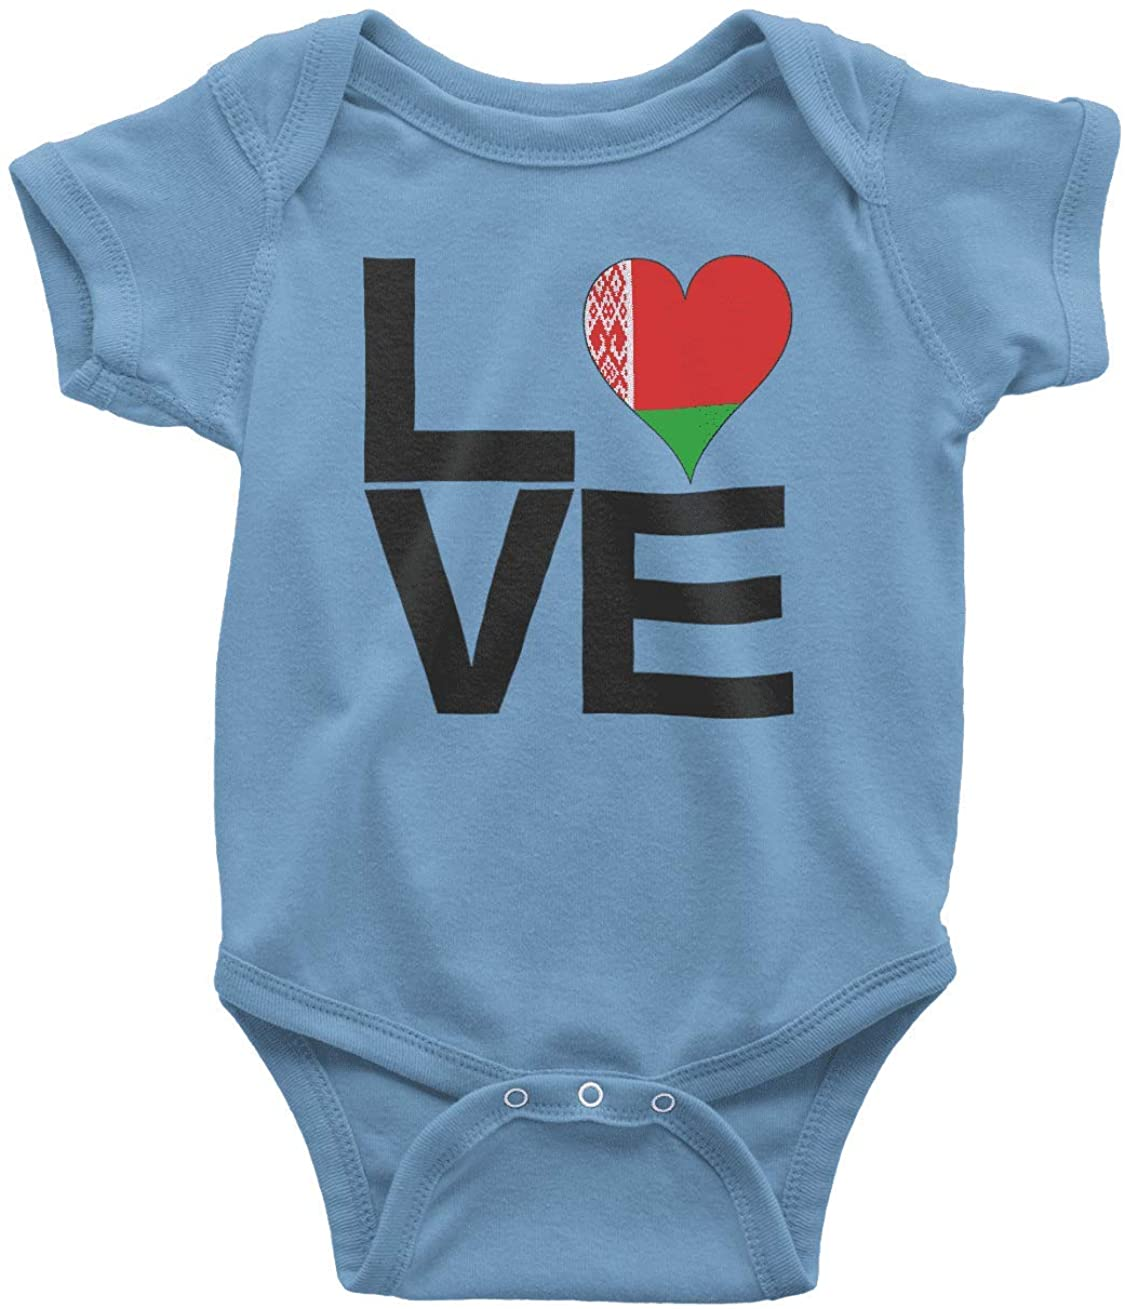 HARD EDGE DESIGN Infant's Love Block Belarus Heart Bodysuit, 6 Months, Carolina Blue